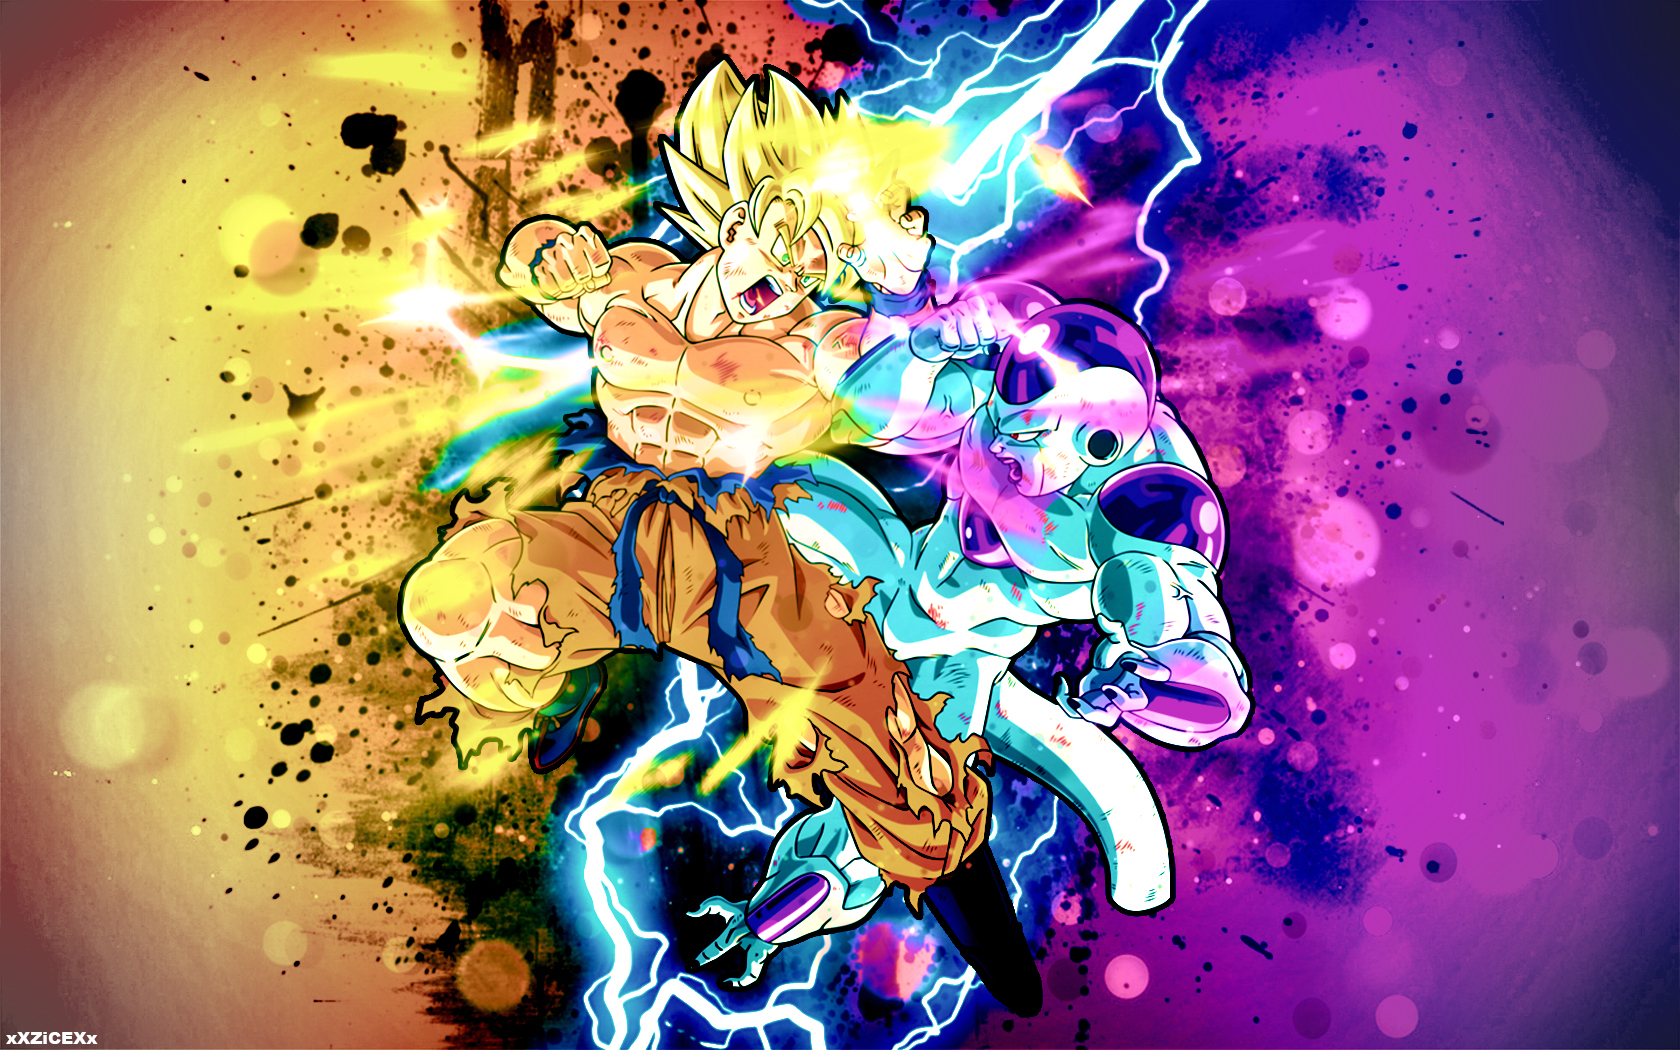 dbz frieza wallpaper - photo #12